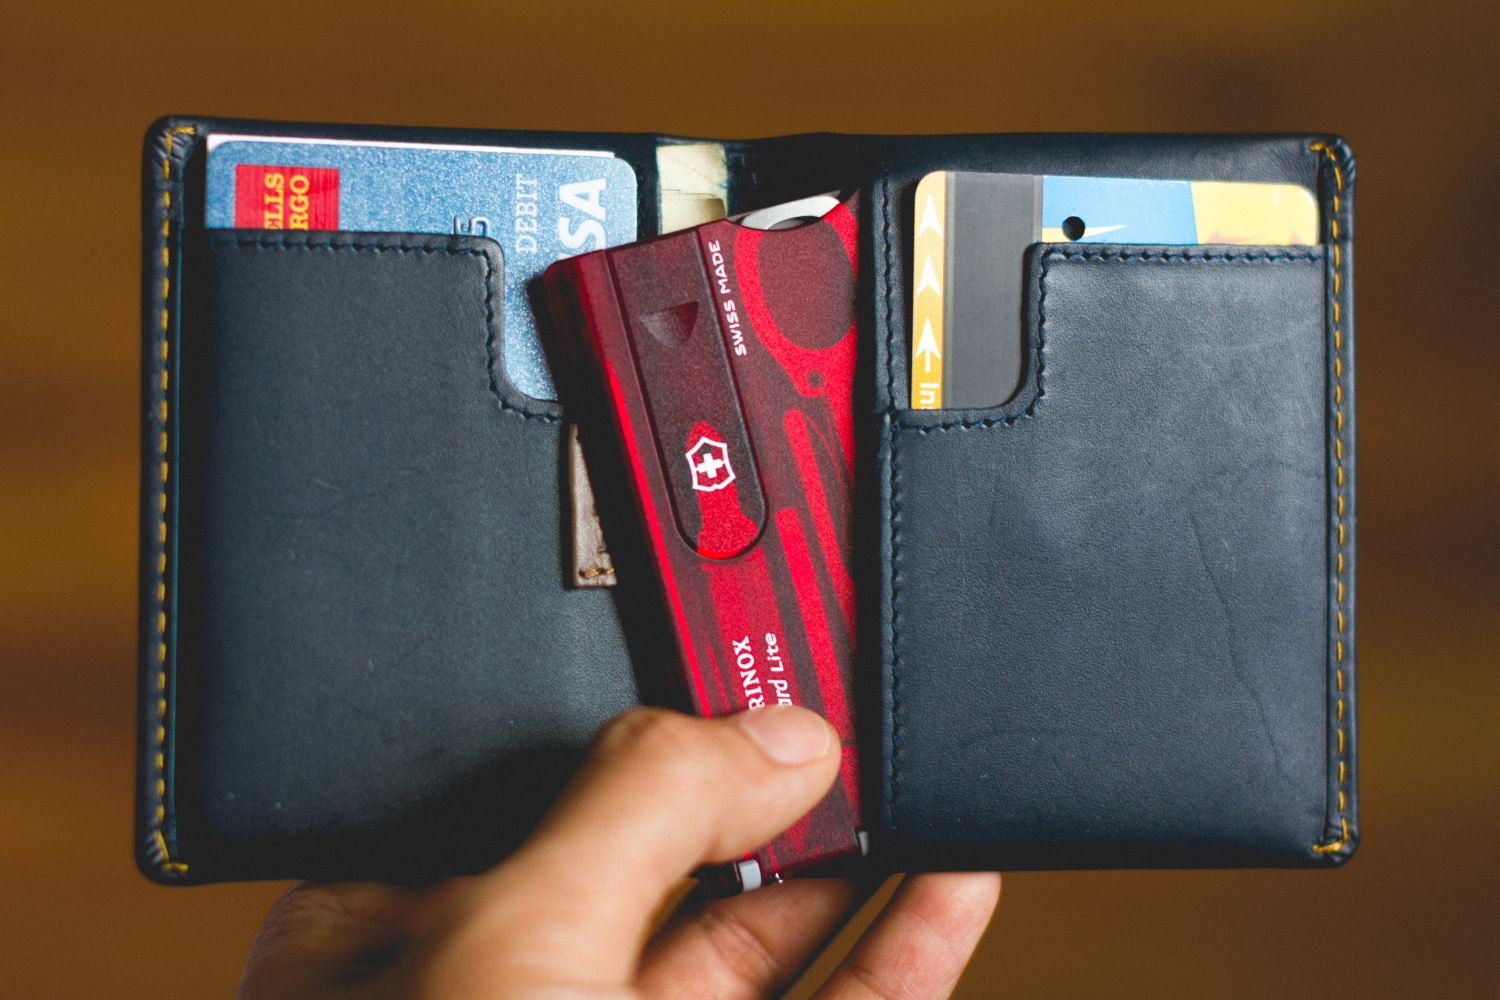 8 Card-sized Tools That Fit Your Wallet